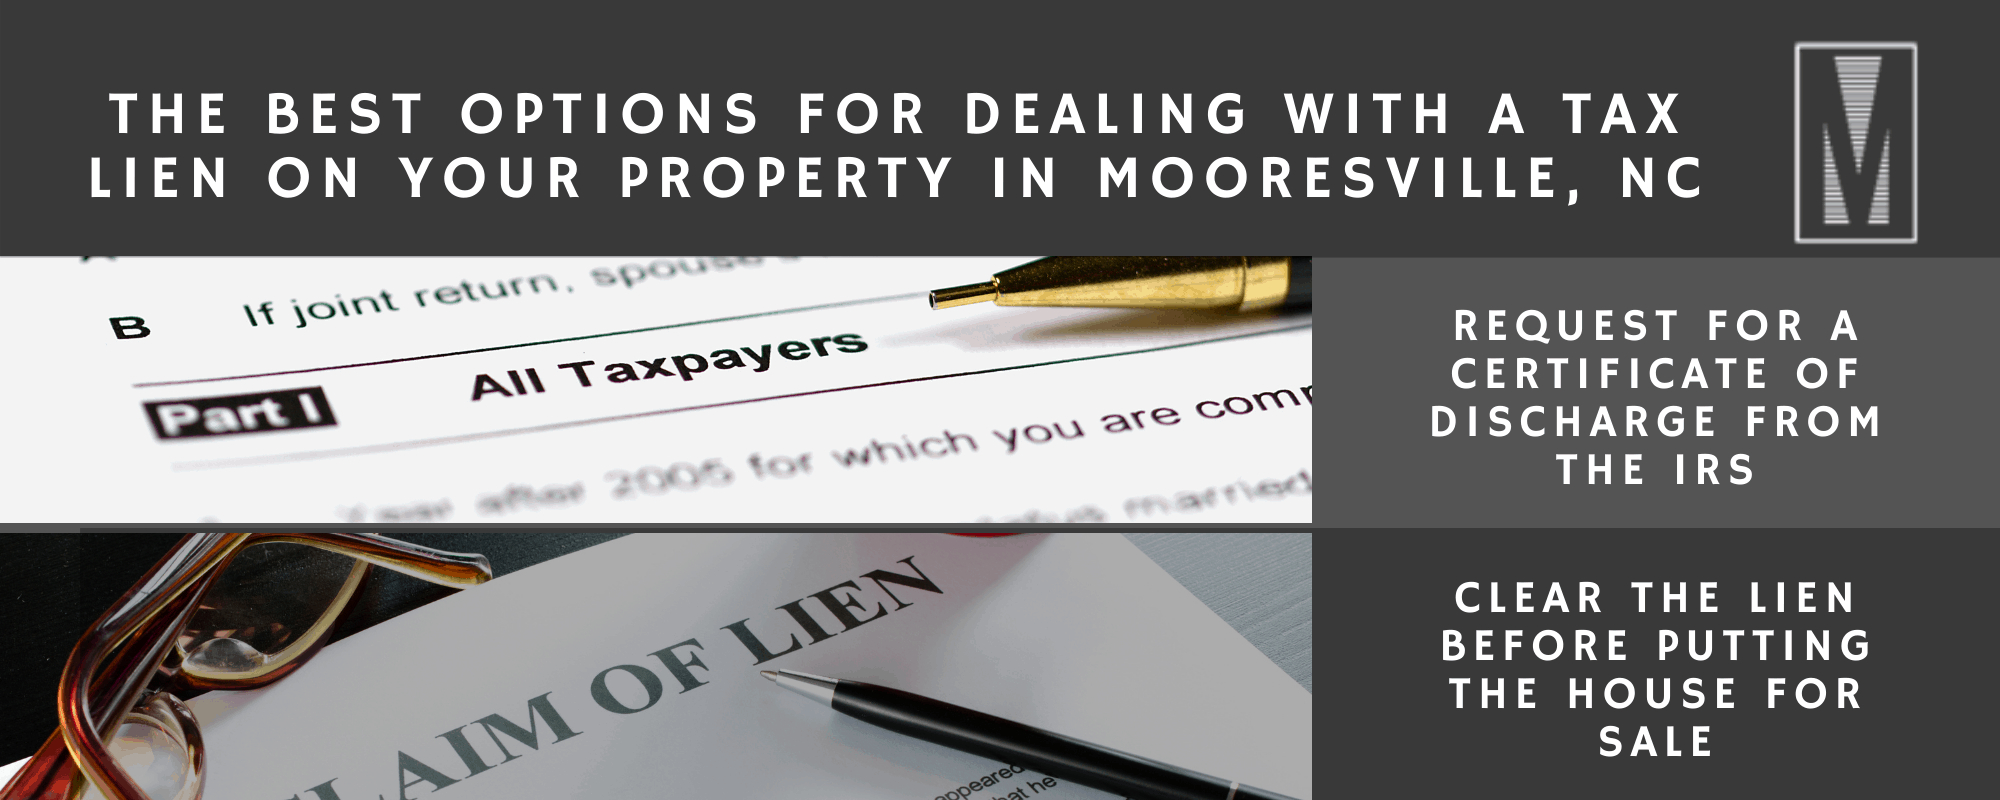 The Best Options for Dealing with a Tax Lien on Your Property in Mooresville, NC